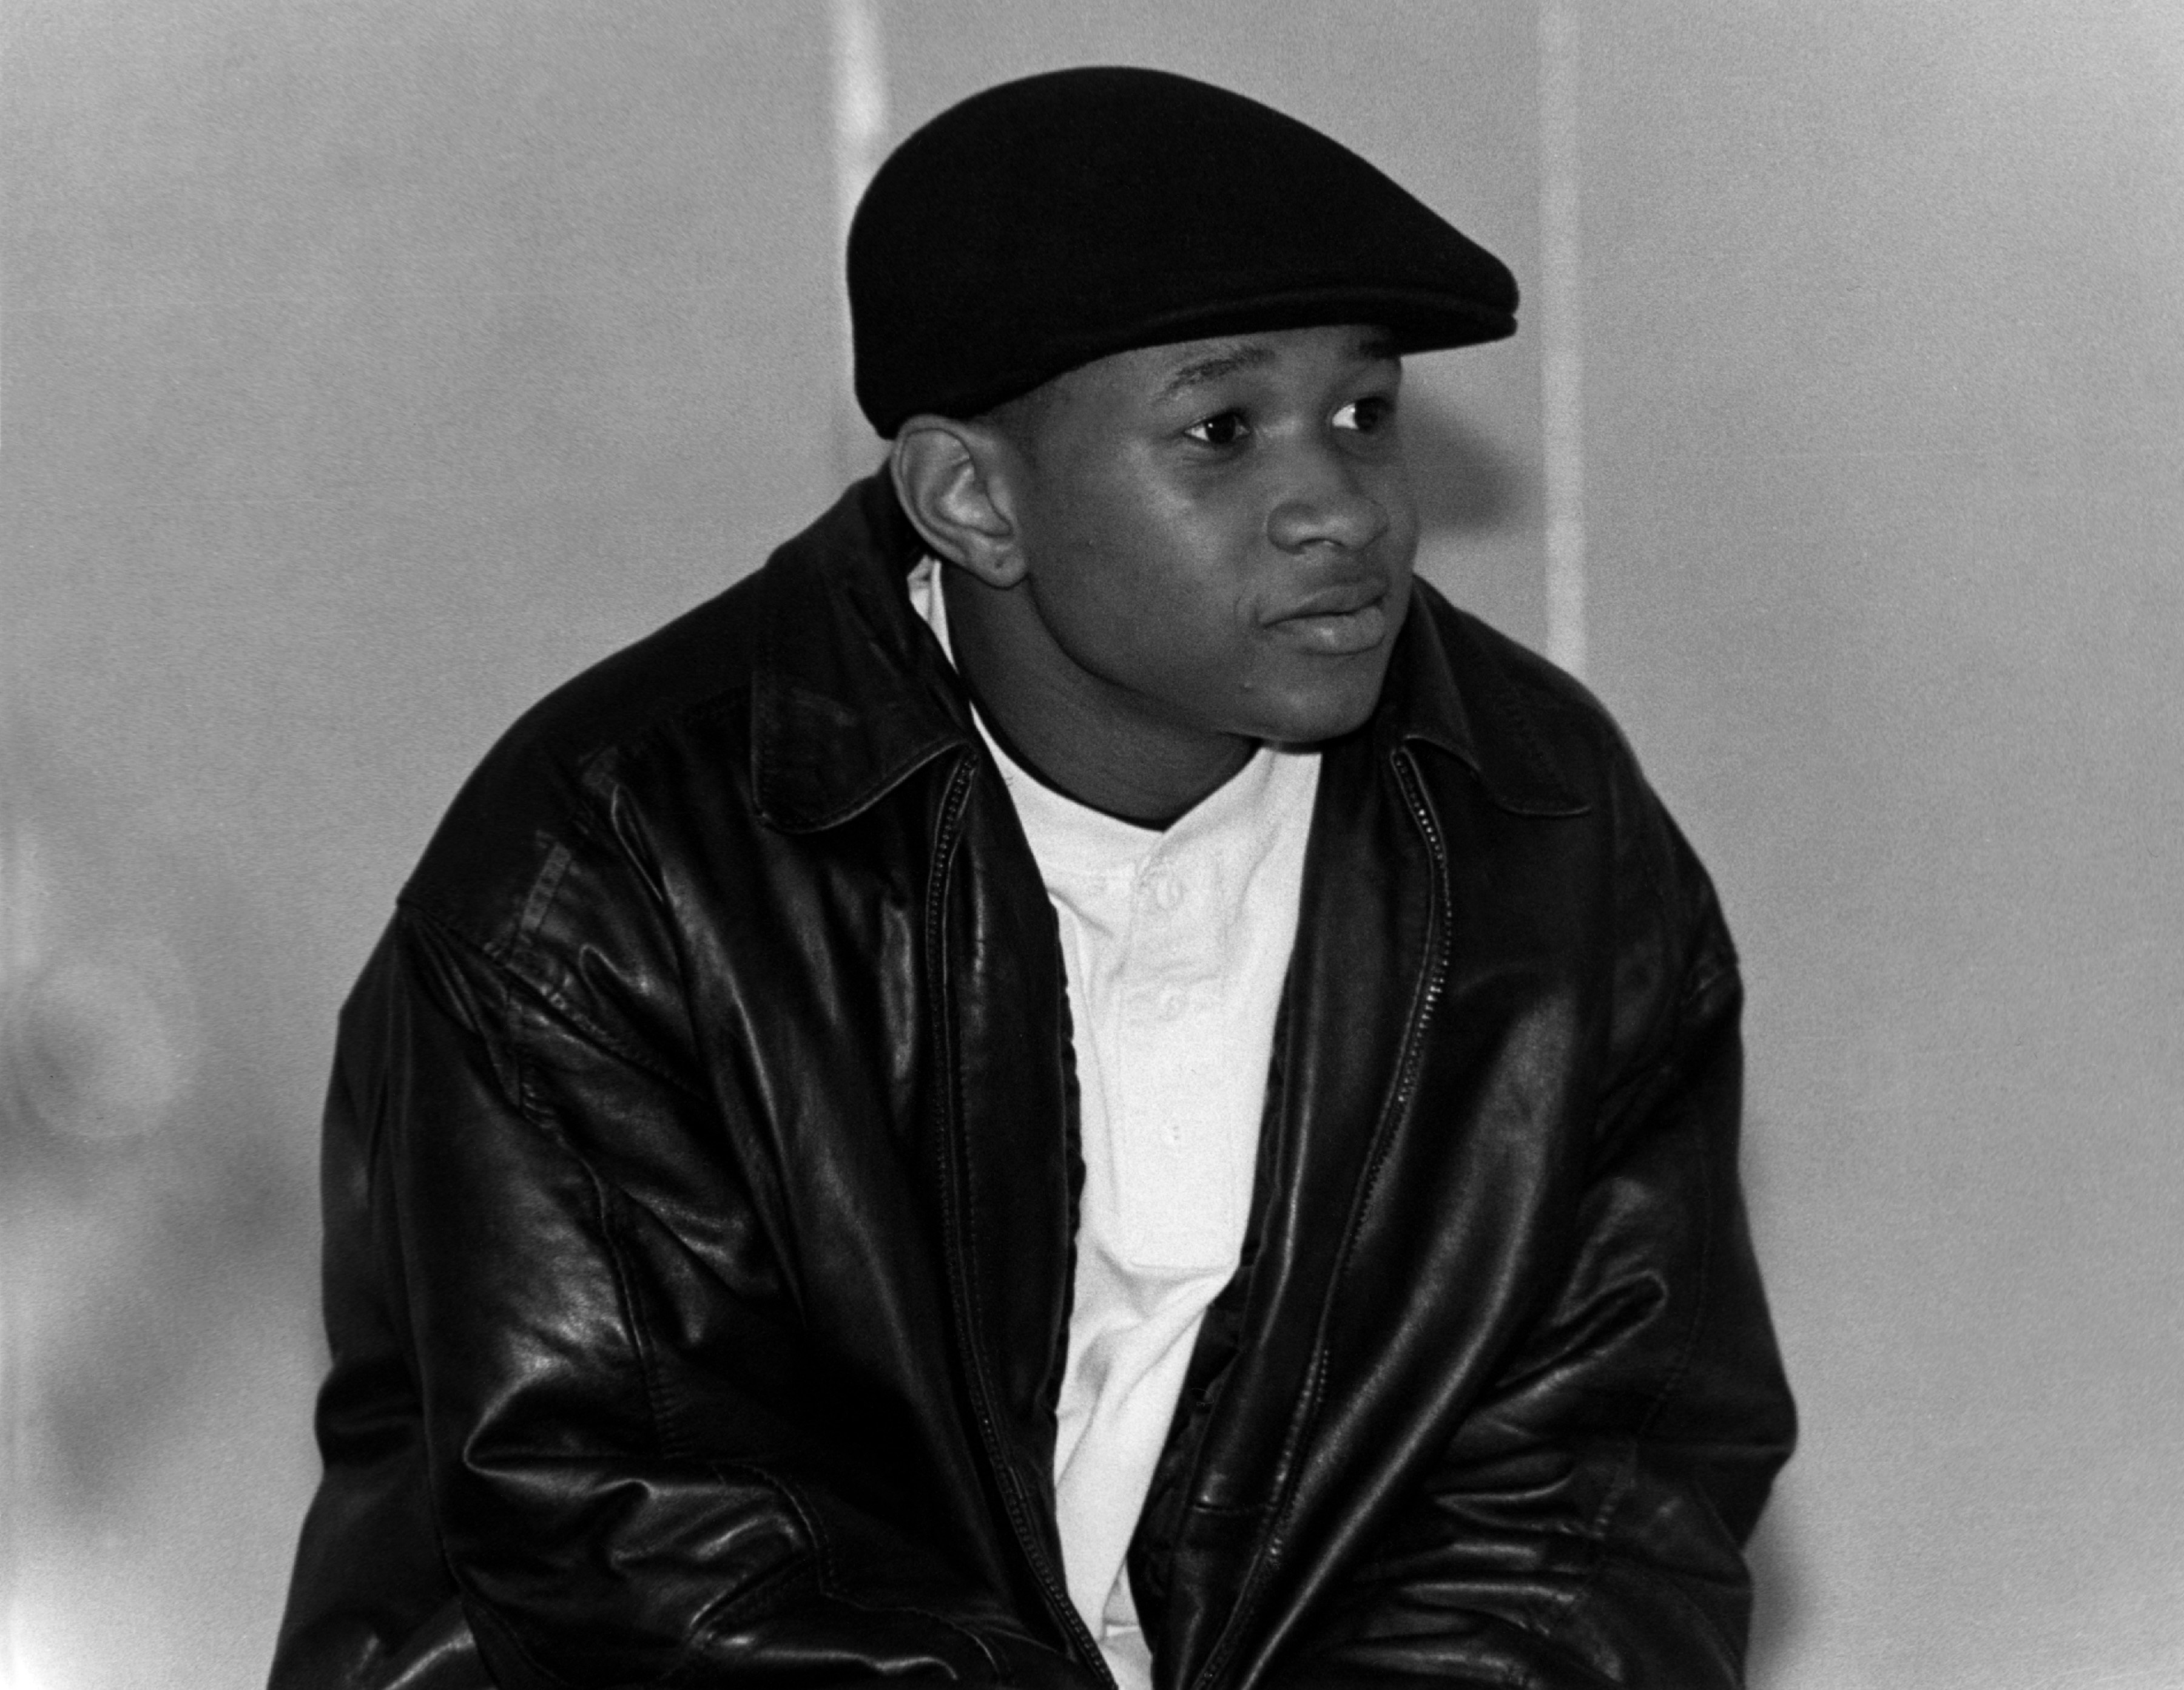 Singer Usher talks to students at Chicago Vocational High School in December 1994.